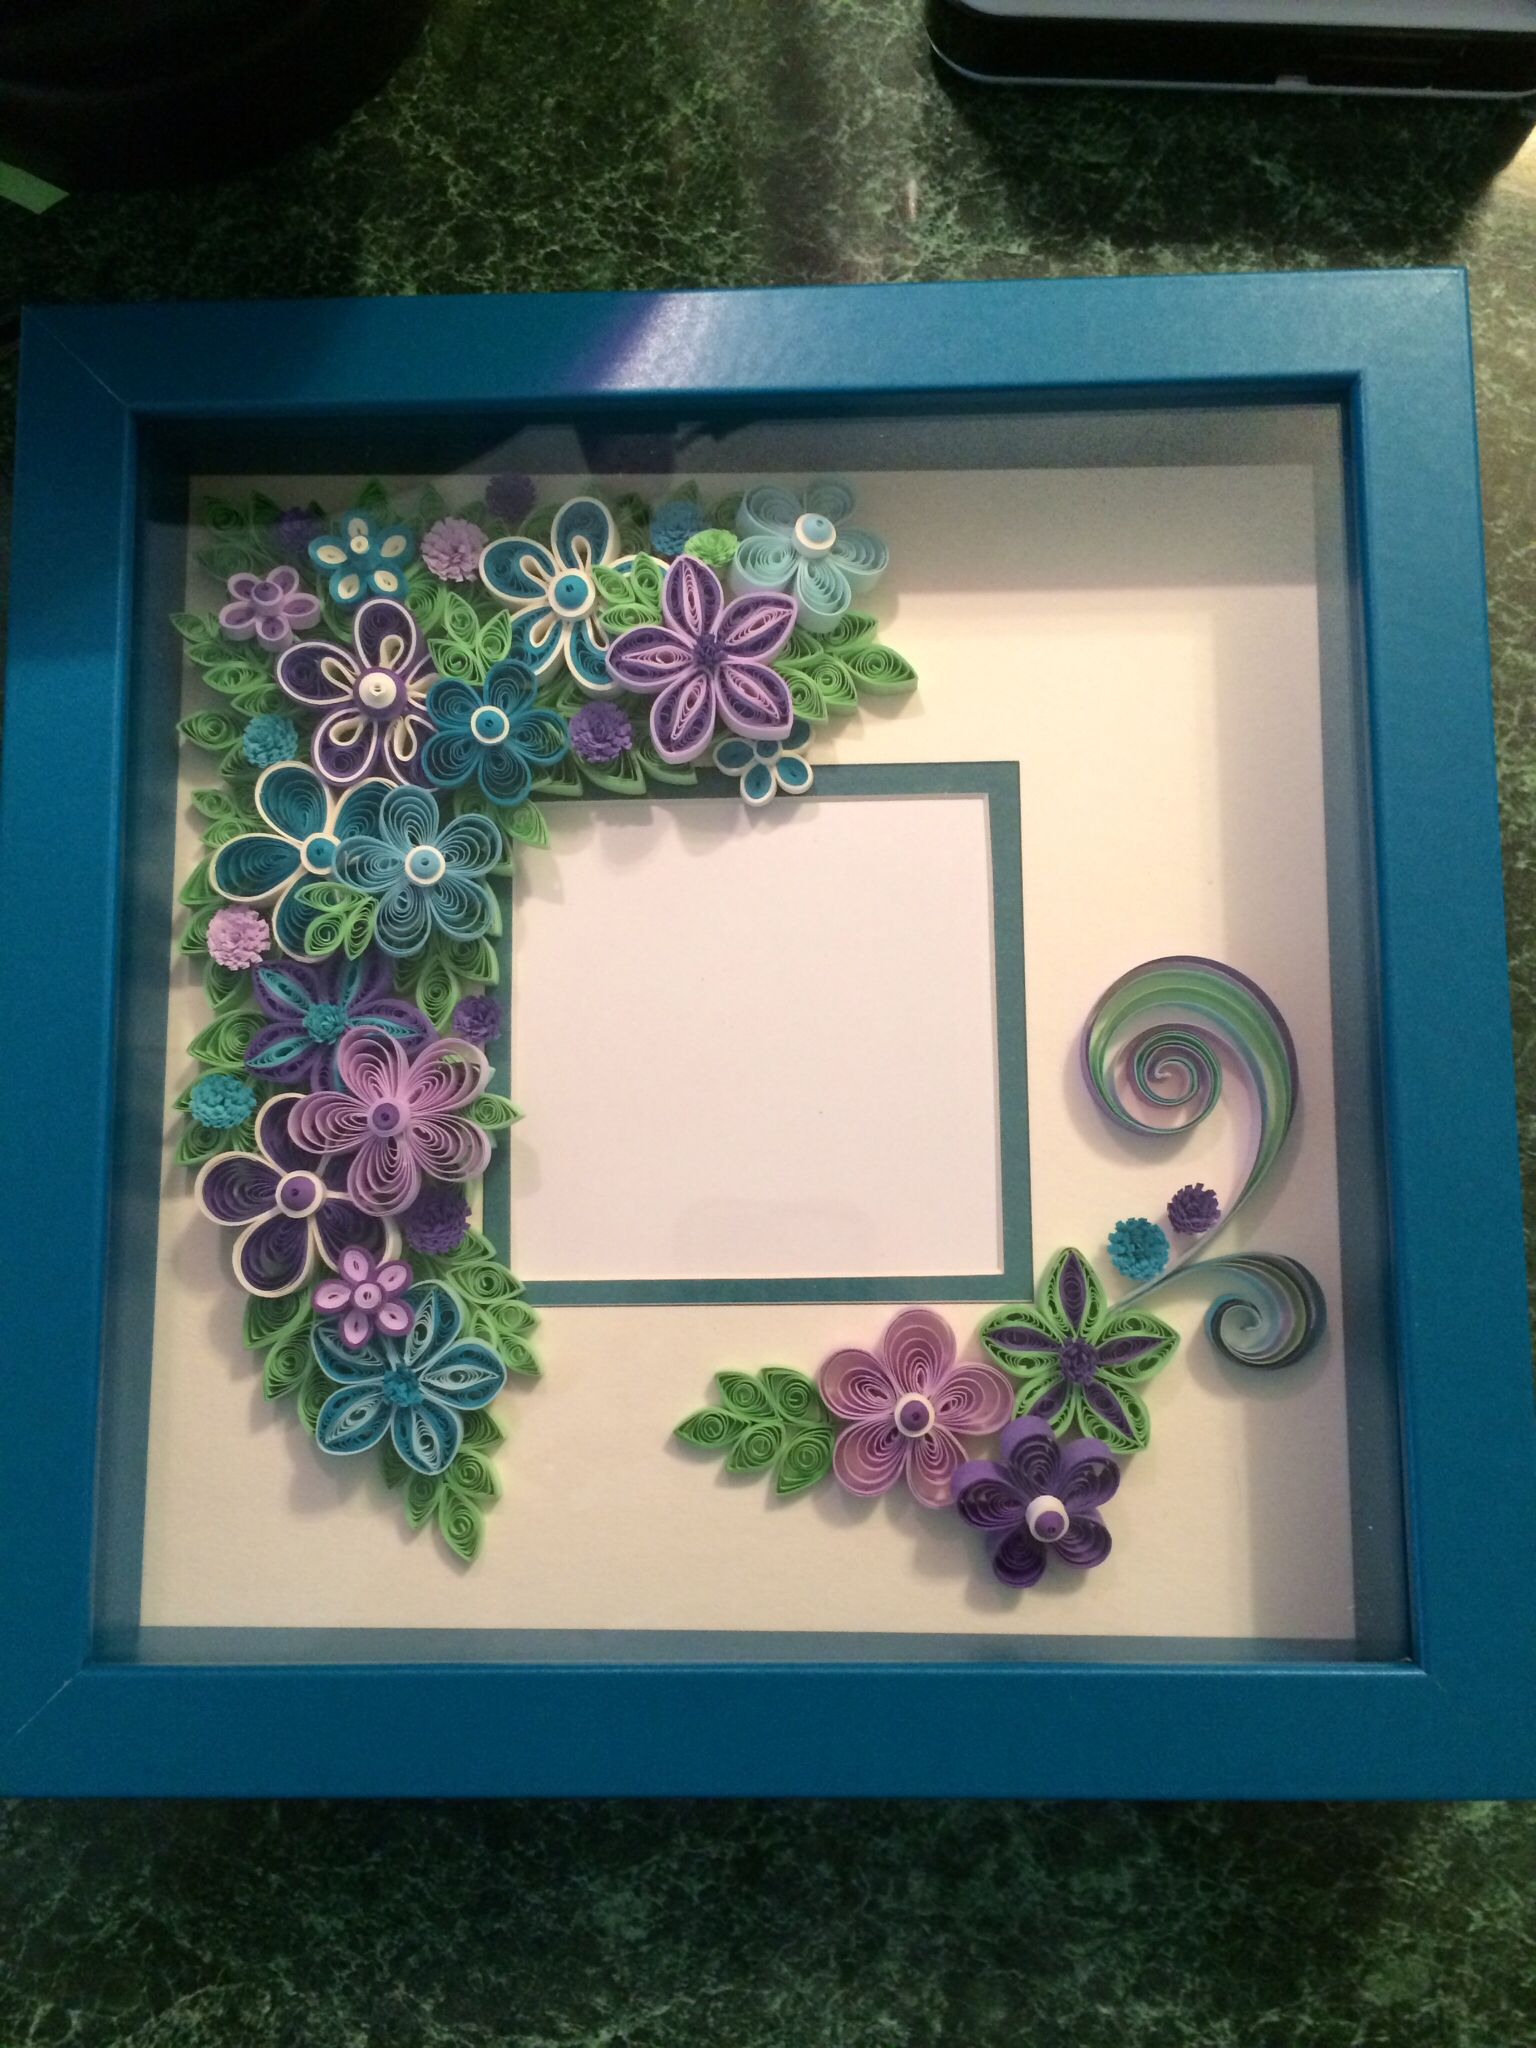 quilled shadow box frame by ginny huff